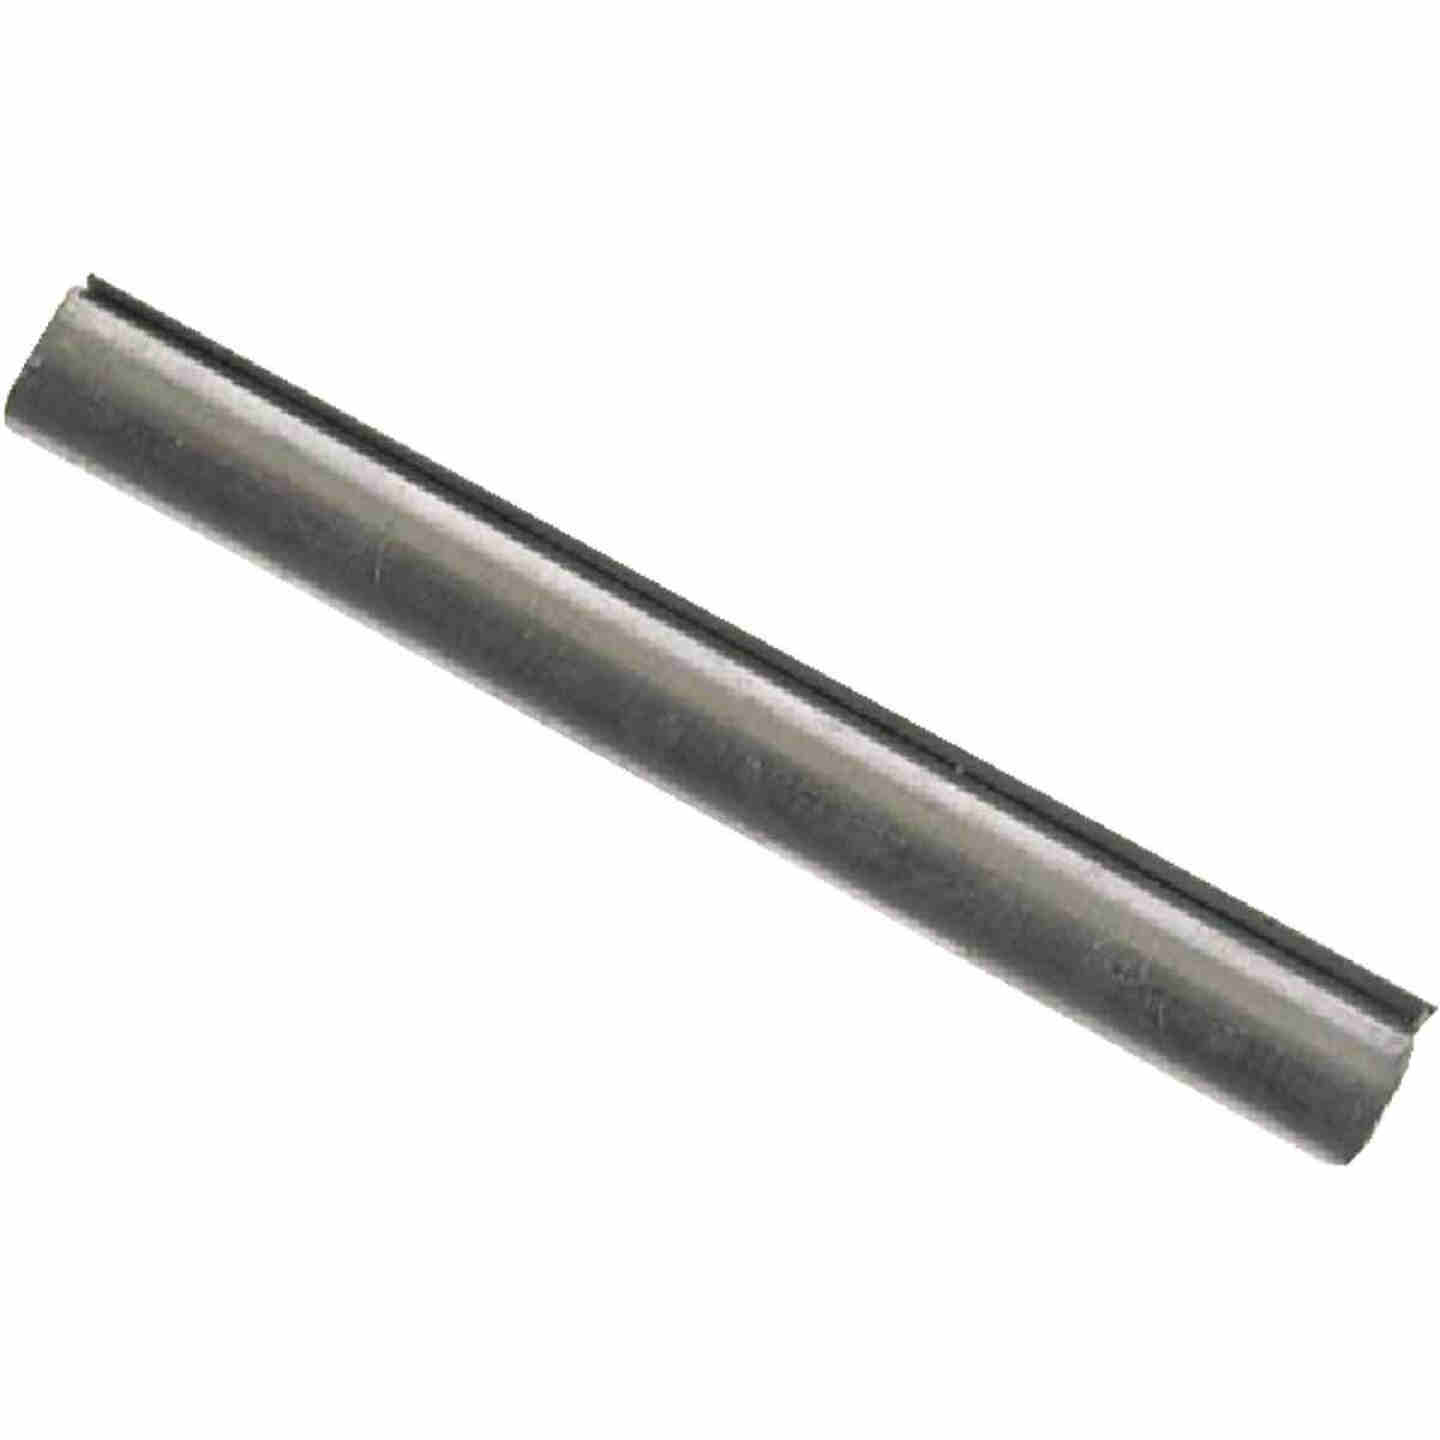 NorWesco 4 In. Galvanized Gutter Ferrule Image 1